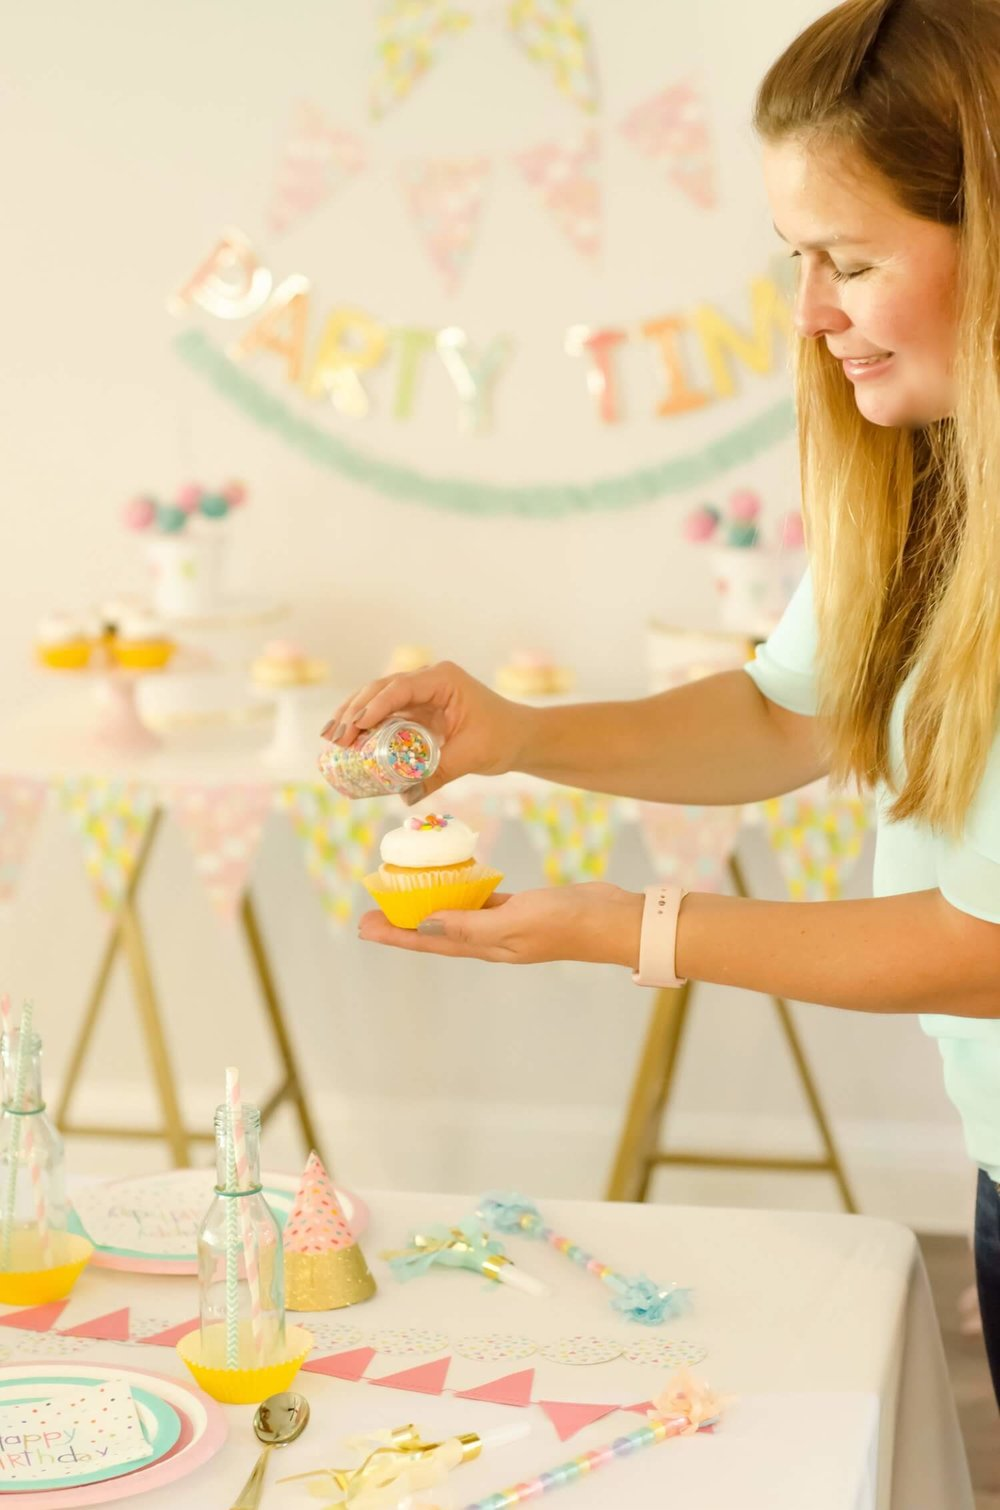 Have fun preparing and decorating every detail of your parties - including a little sprinkling of sprinkles on the cupcakes / See more ideas on the blog for surprising ways to greet your guests at a Birthday Party / Styled by Carolina from MINT Event Design / www.minteventdesign.com #birthdayparty #partyideas #partyinspiration #partydessert #birthdaycupcakes #partycupcakes #cupcakes